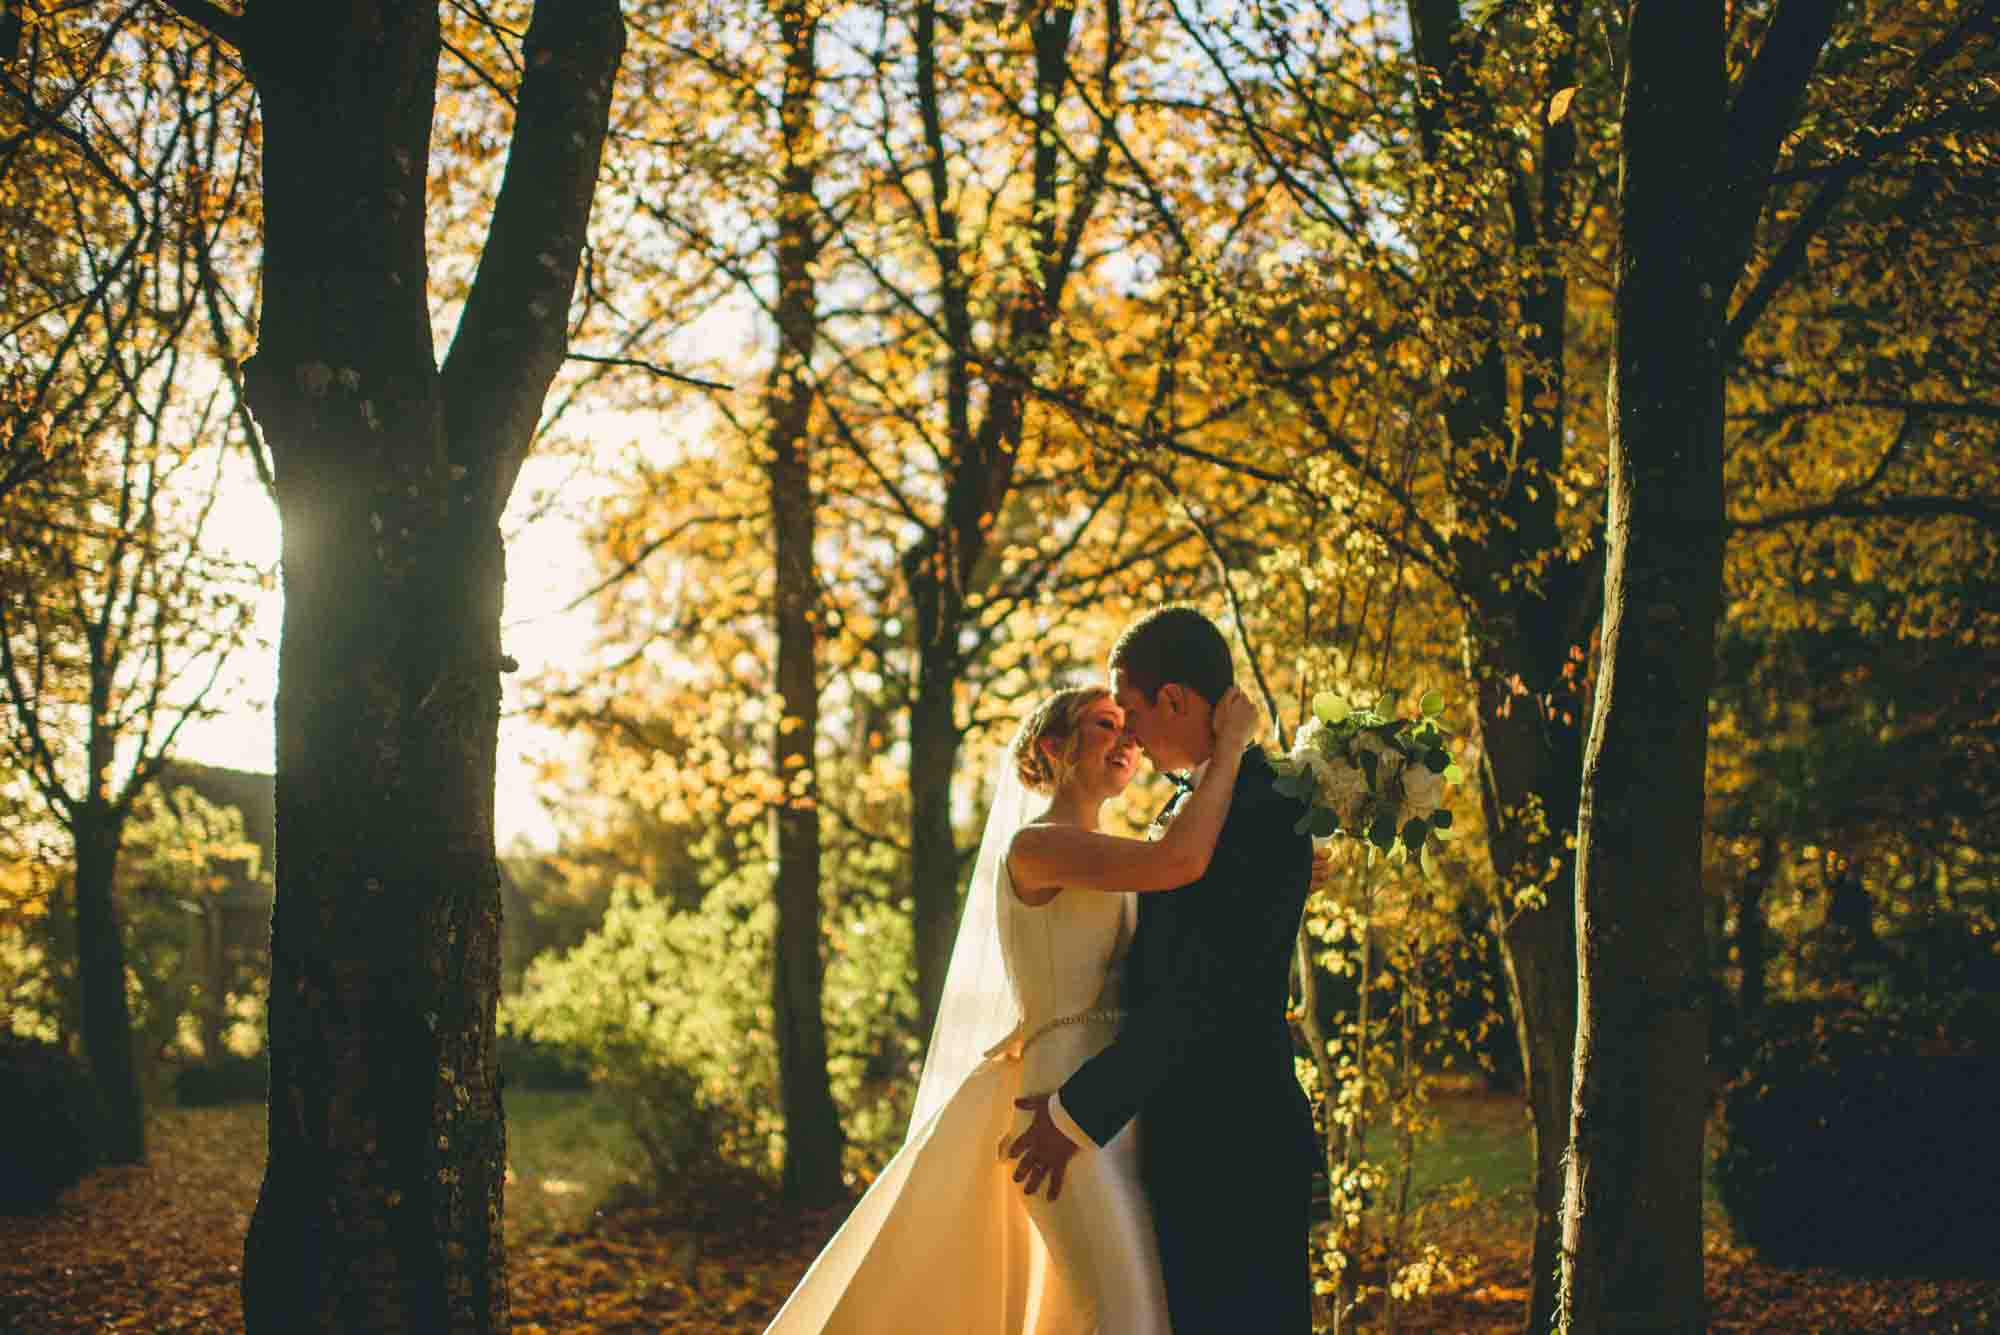 Bride and Groom in Autumn Woods Photo at Cripps Barn Wedding